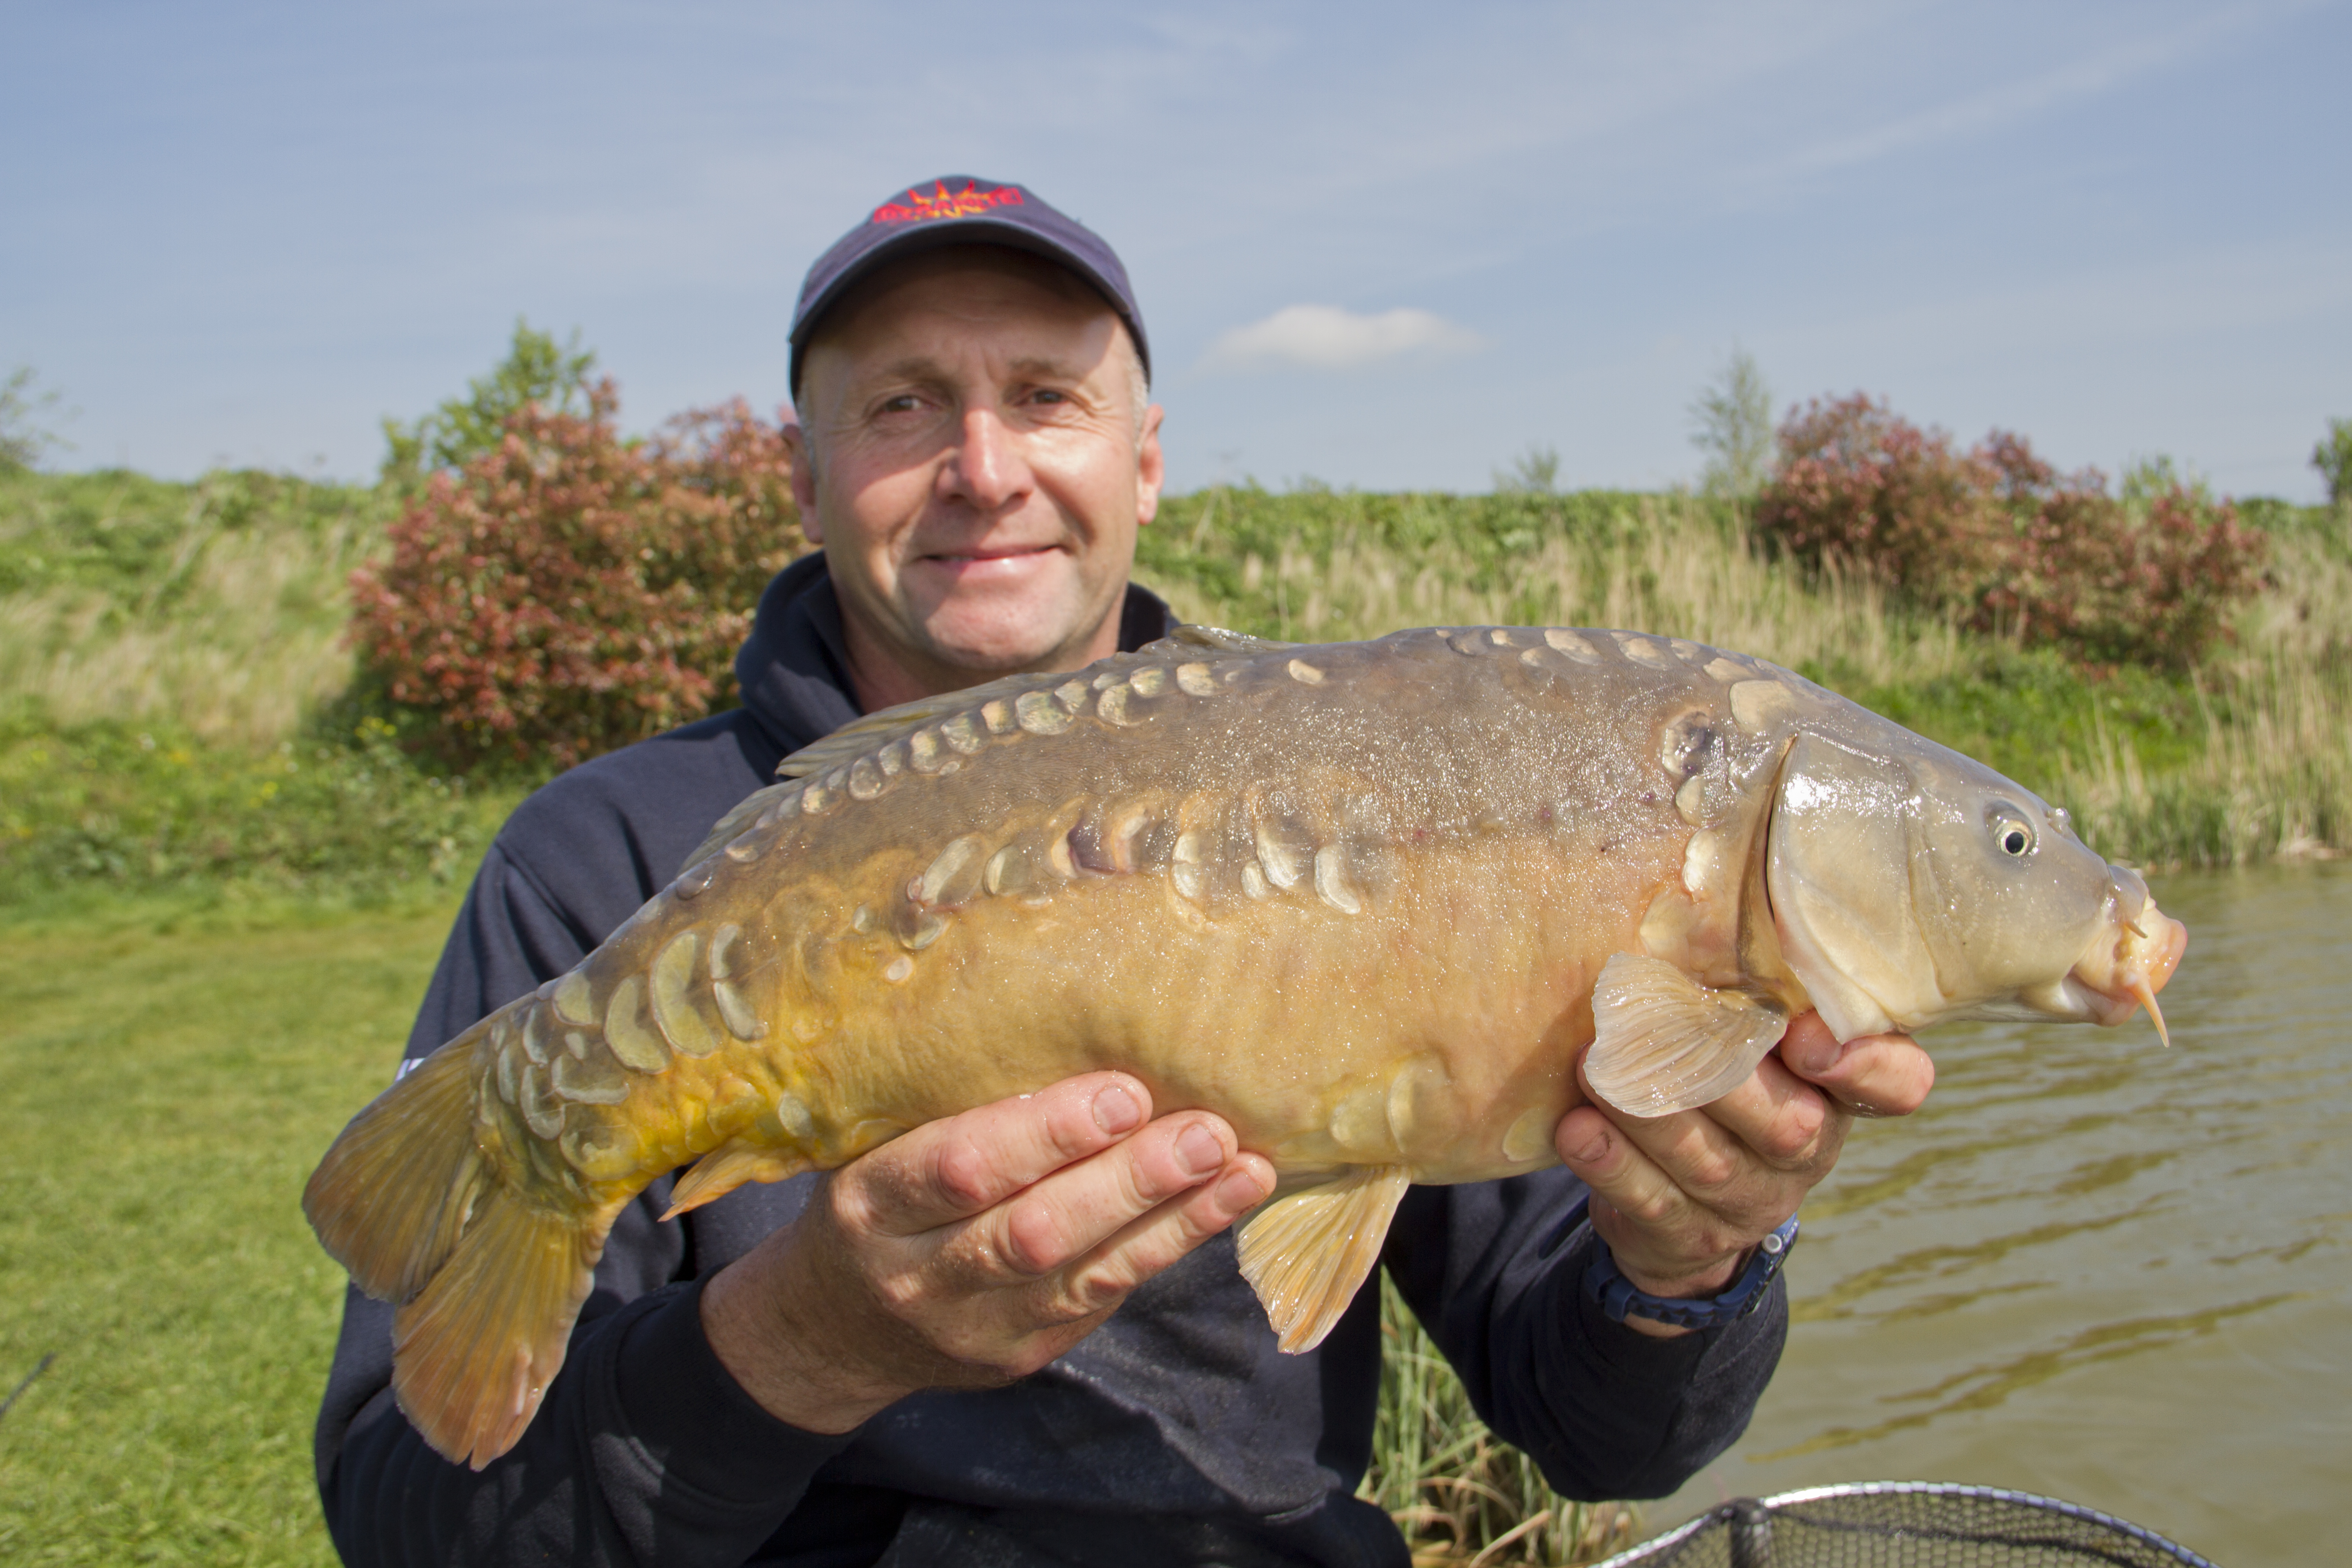 West midlands wales match fishing results for april 26 for Scott and white fish pond